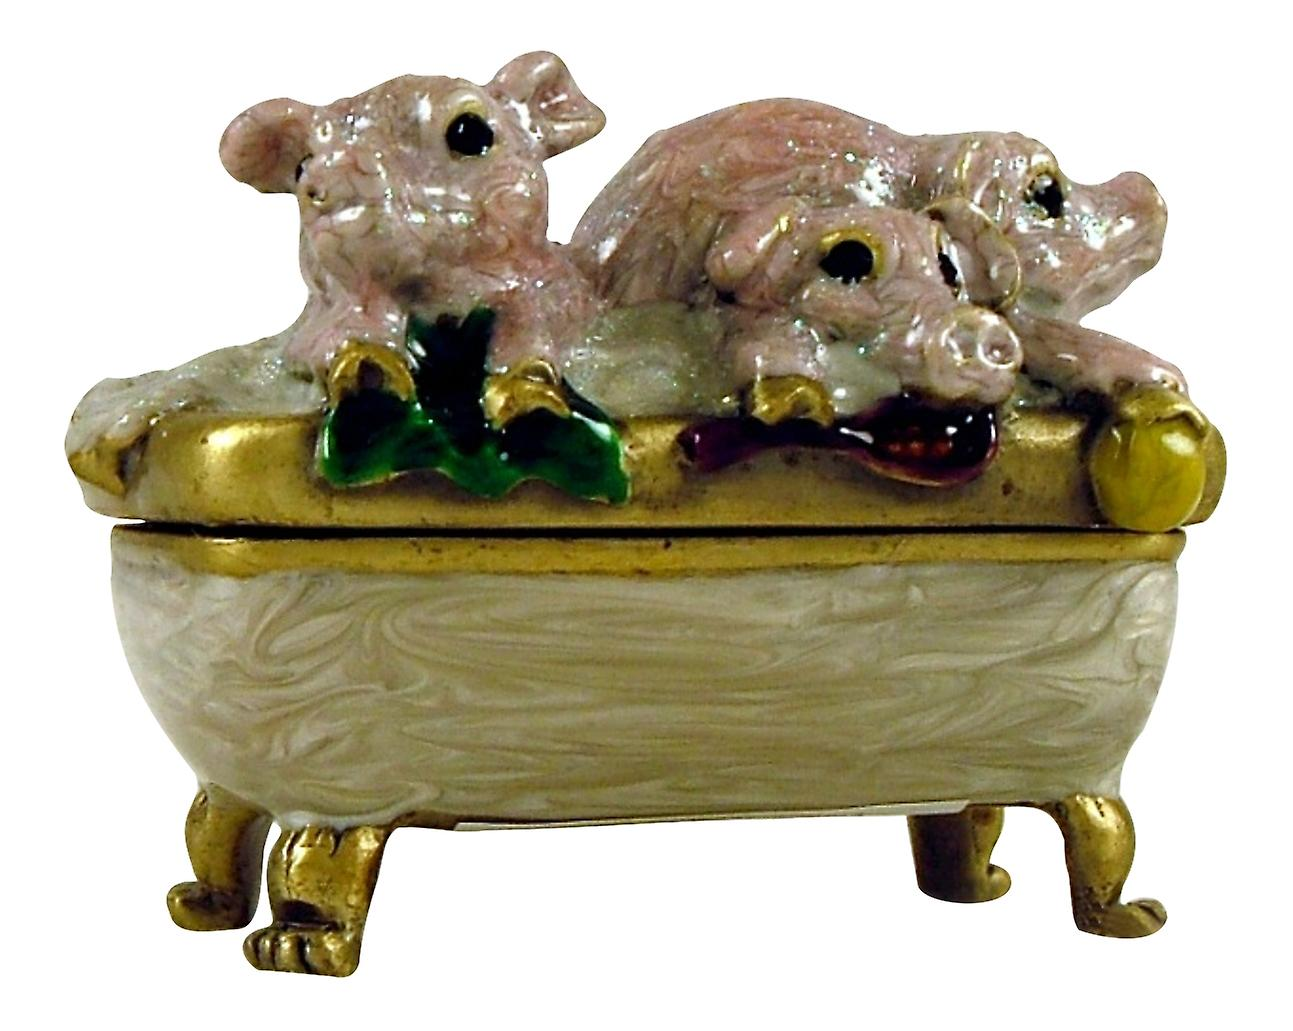 Three Piglet Pigs in Bath Tub Jewelled Trinket Box